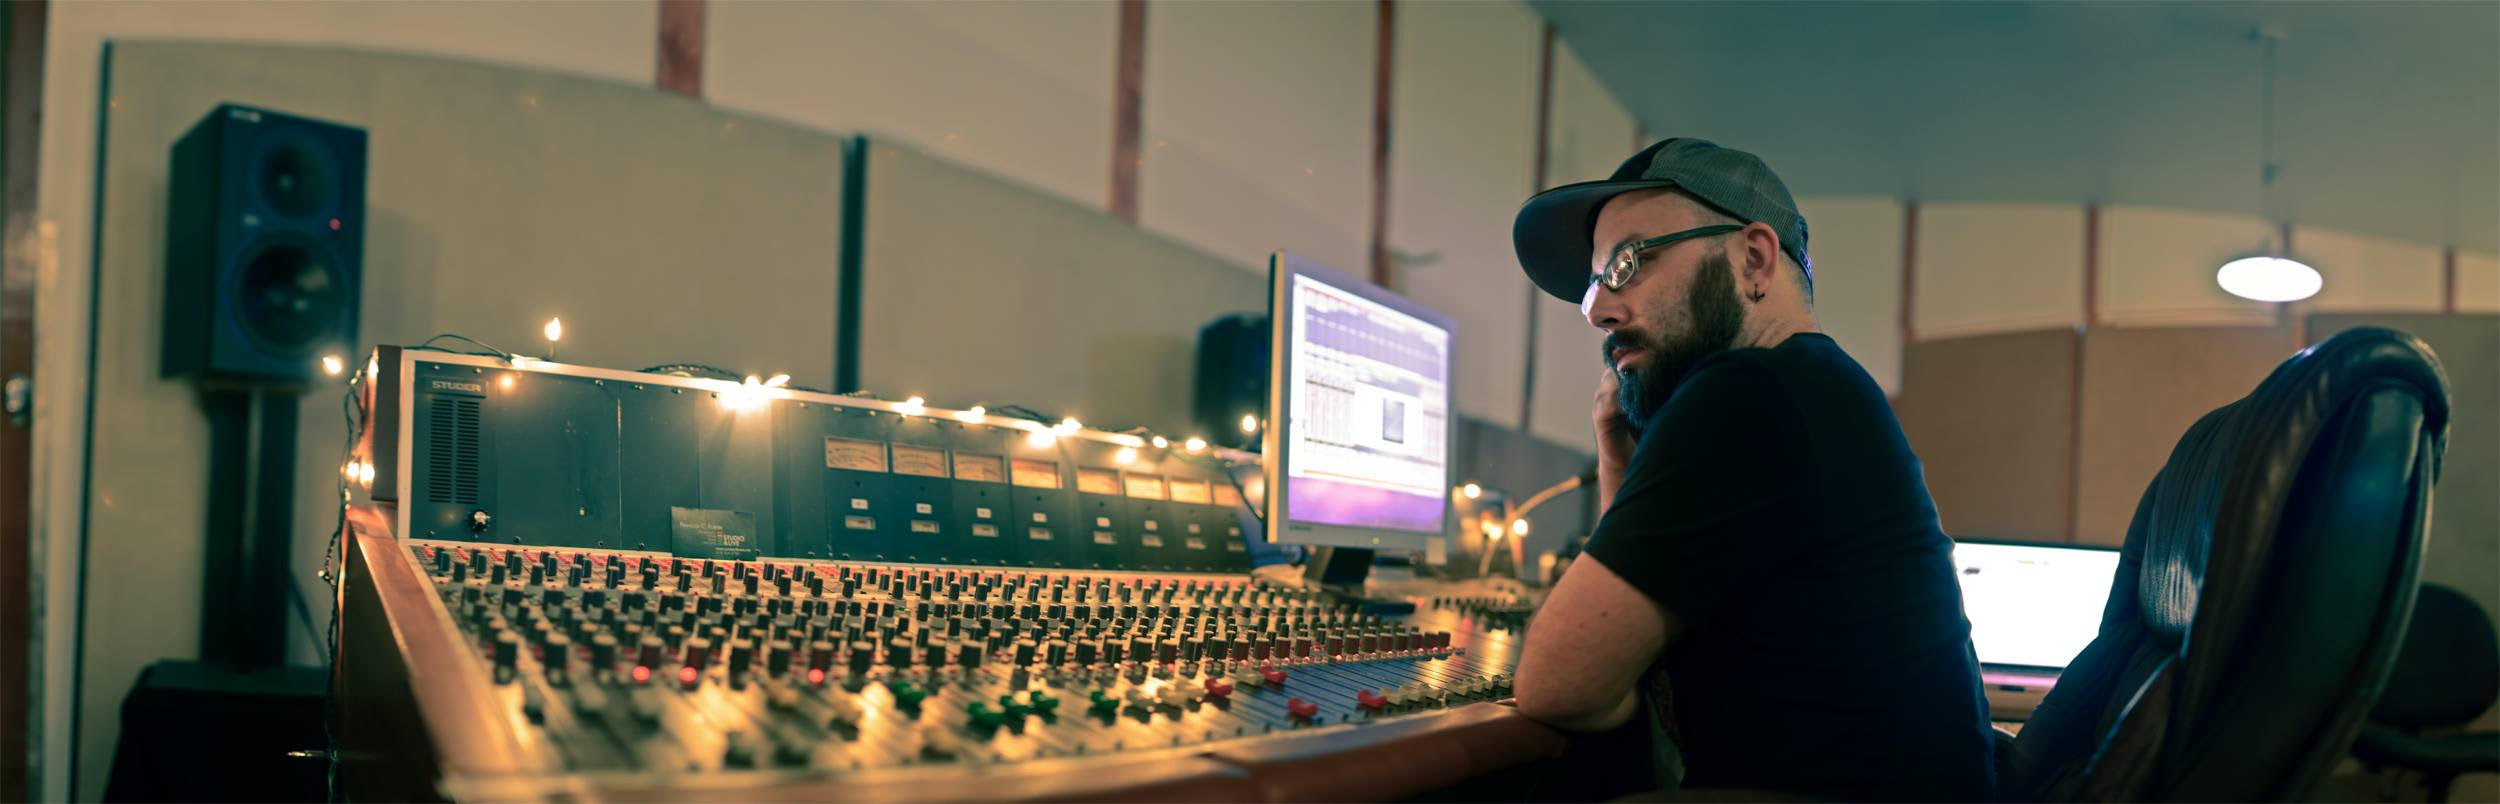 The art of sound engineering with Chris Edrich